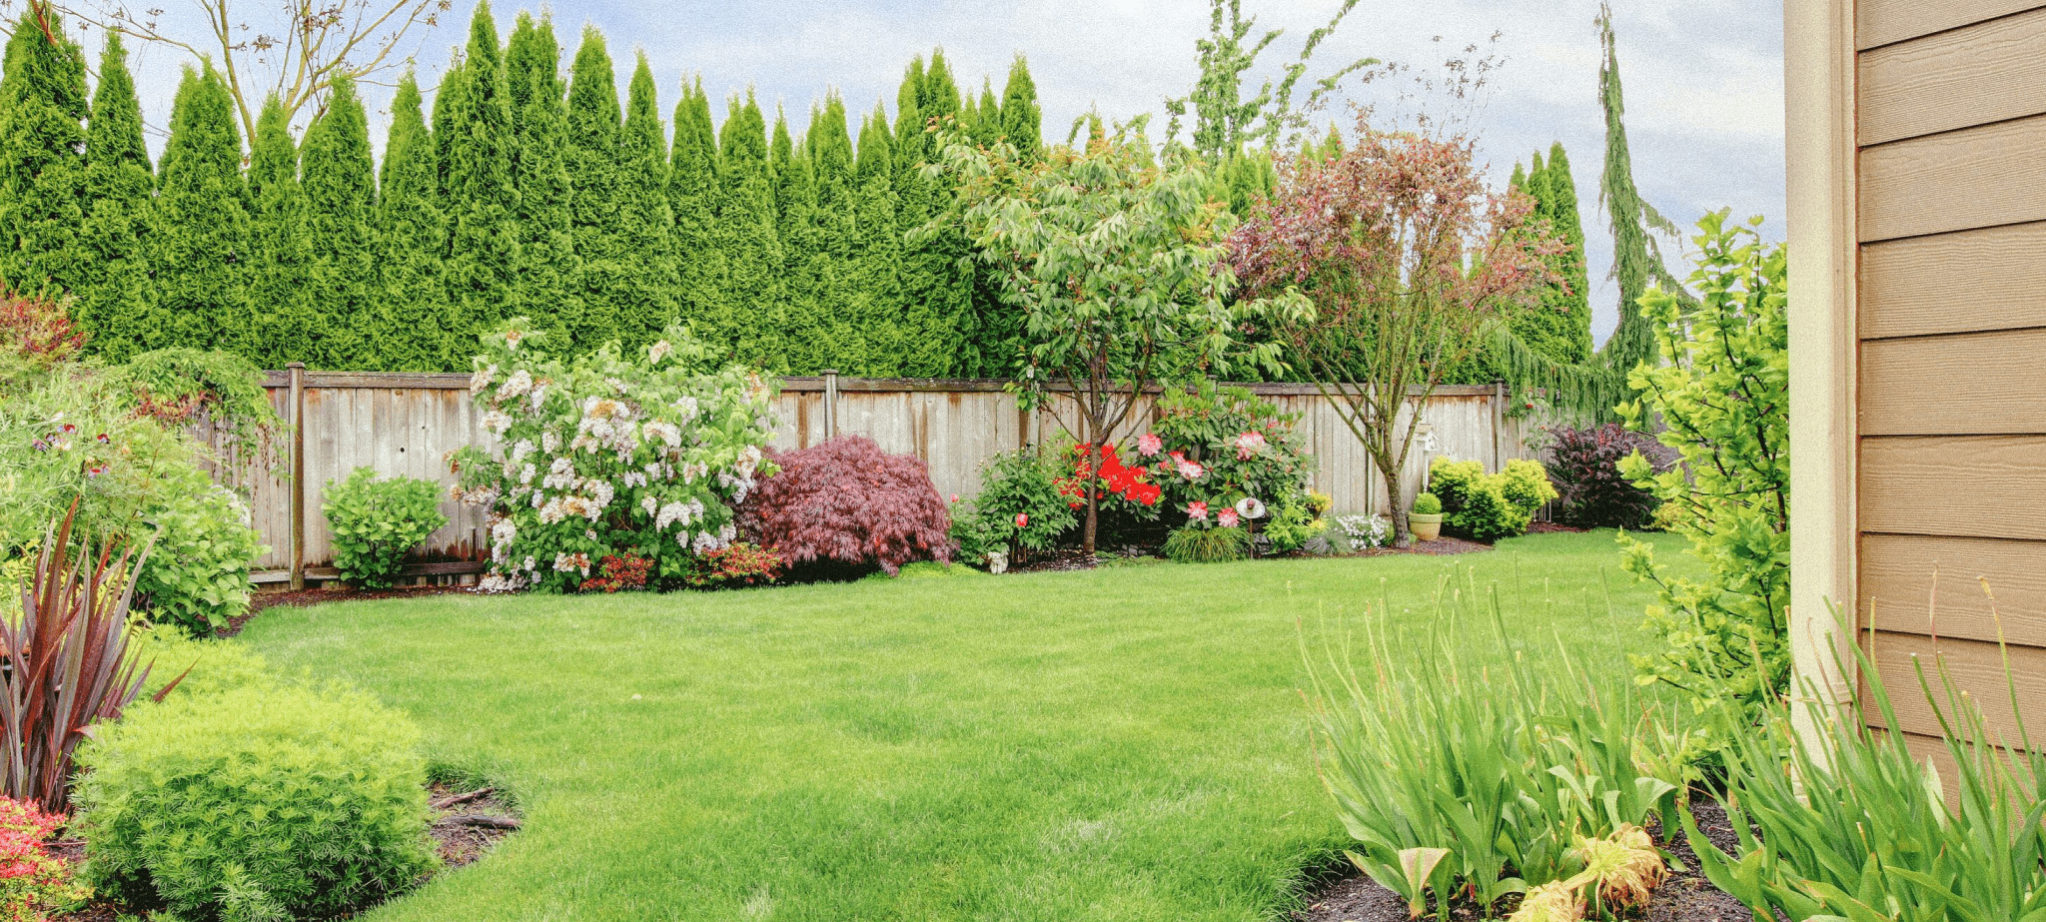 what-type-of-bushes-should-i-get-for-my-home